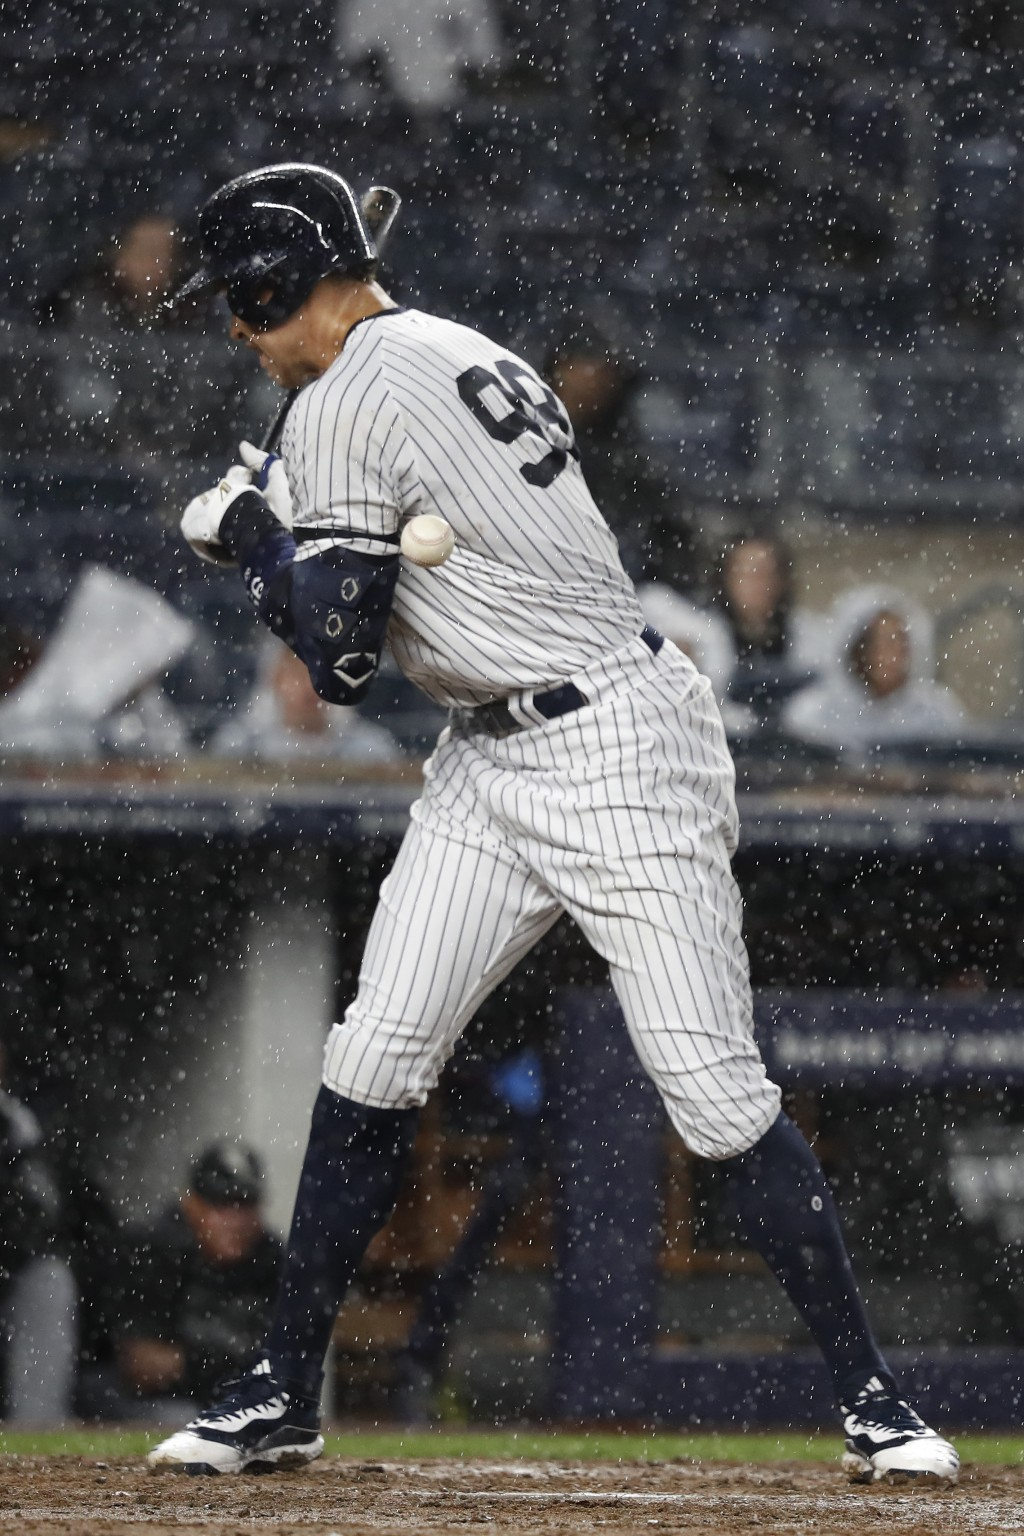 New York Yankees Aaron Judge is hit by a pitch thrown by Chicago White Sox reliever Nate Jones during the sixth inning of a baseball game Friday, Apri...